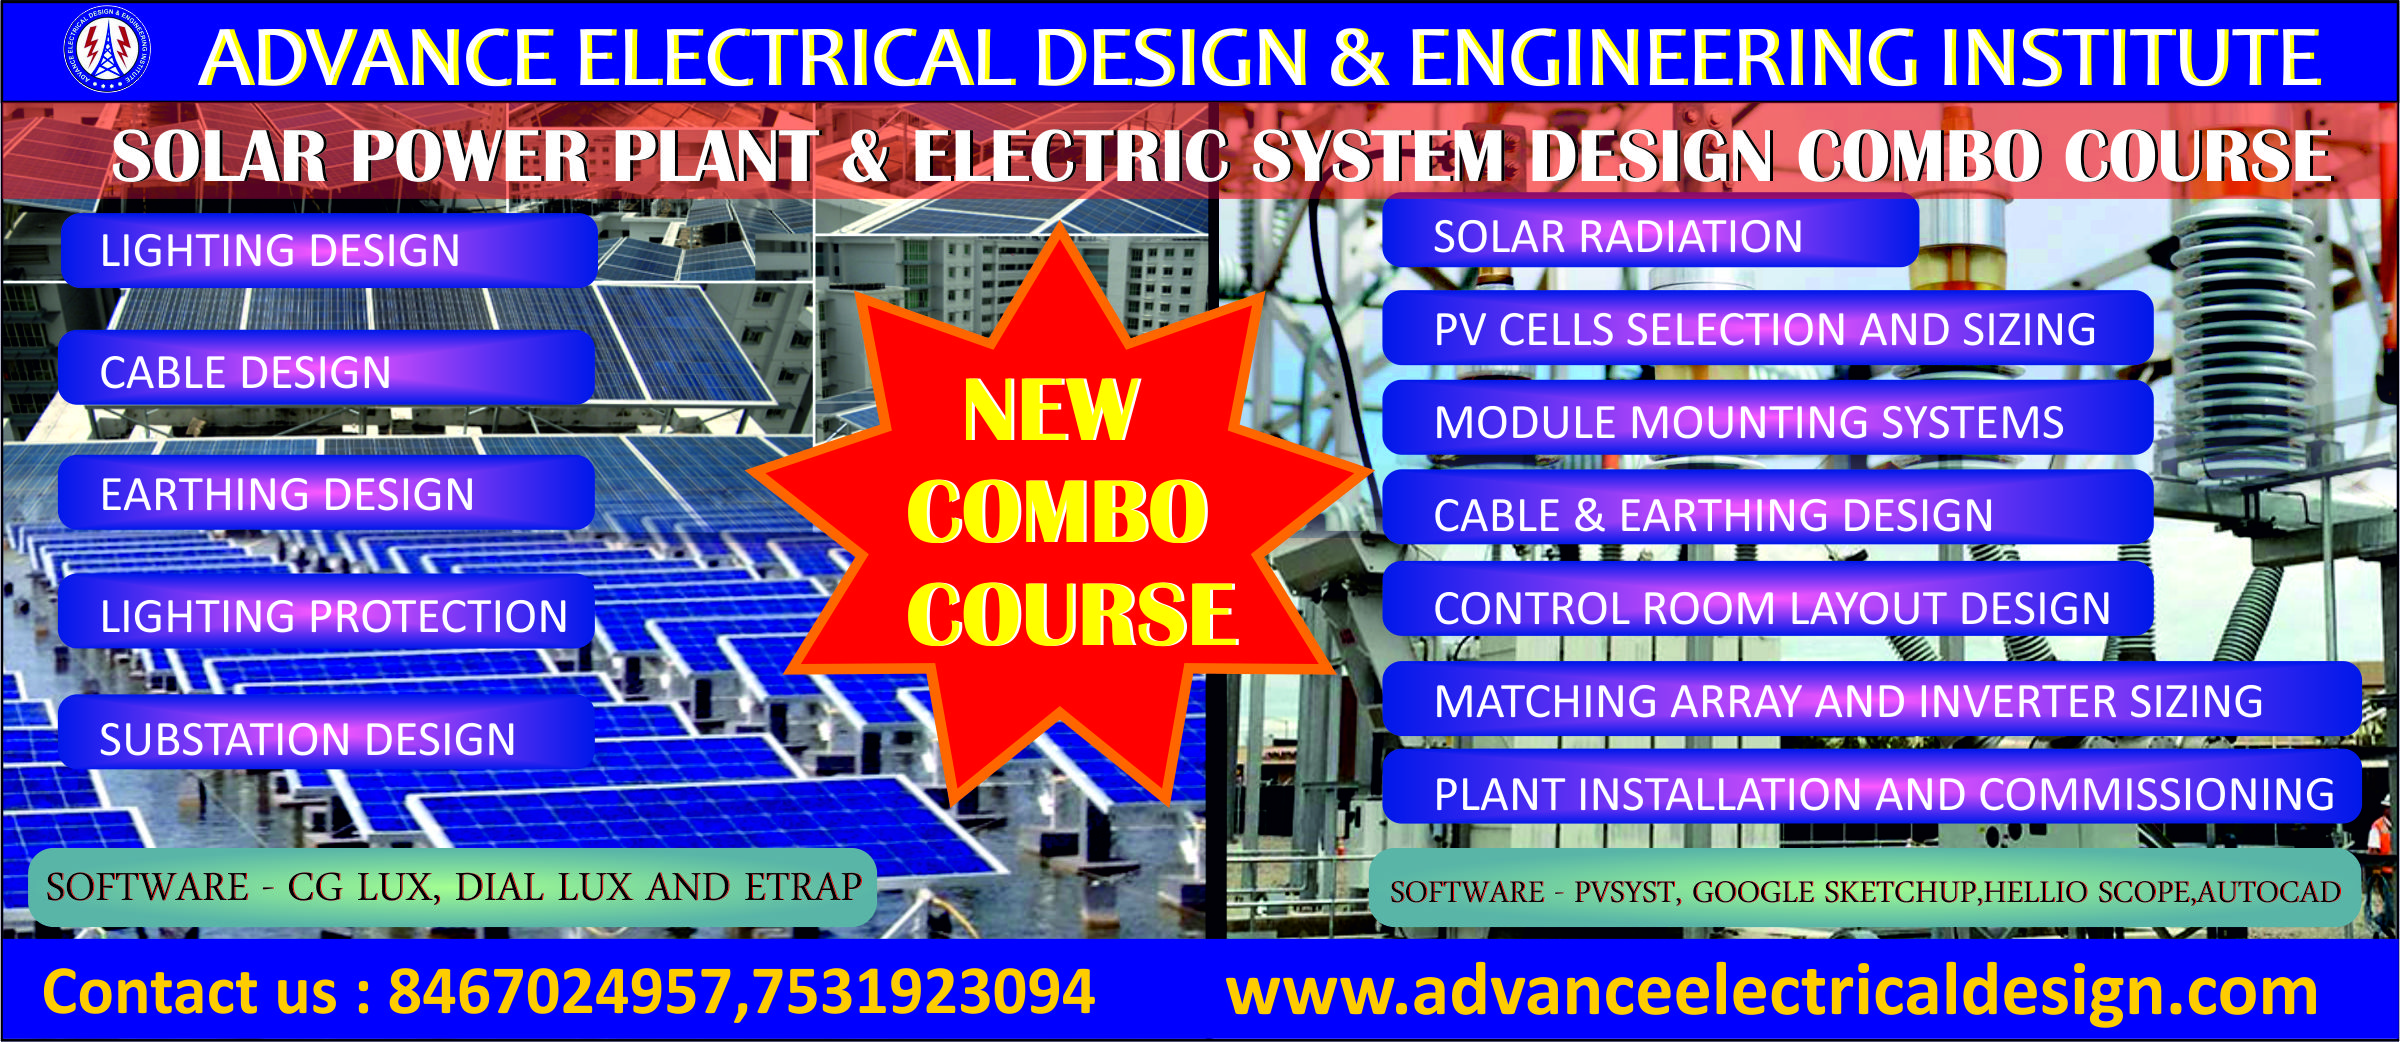 Electrical & Solar Design engineering course, Electrical System Design course, Solar power plant Design Course